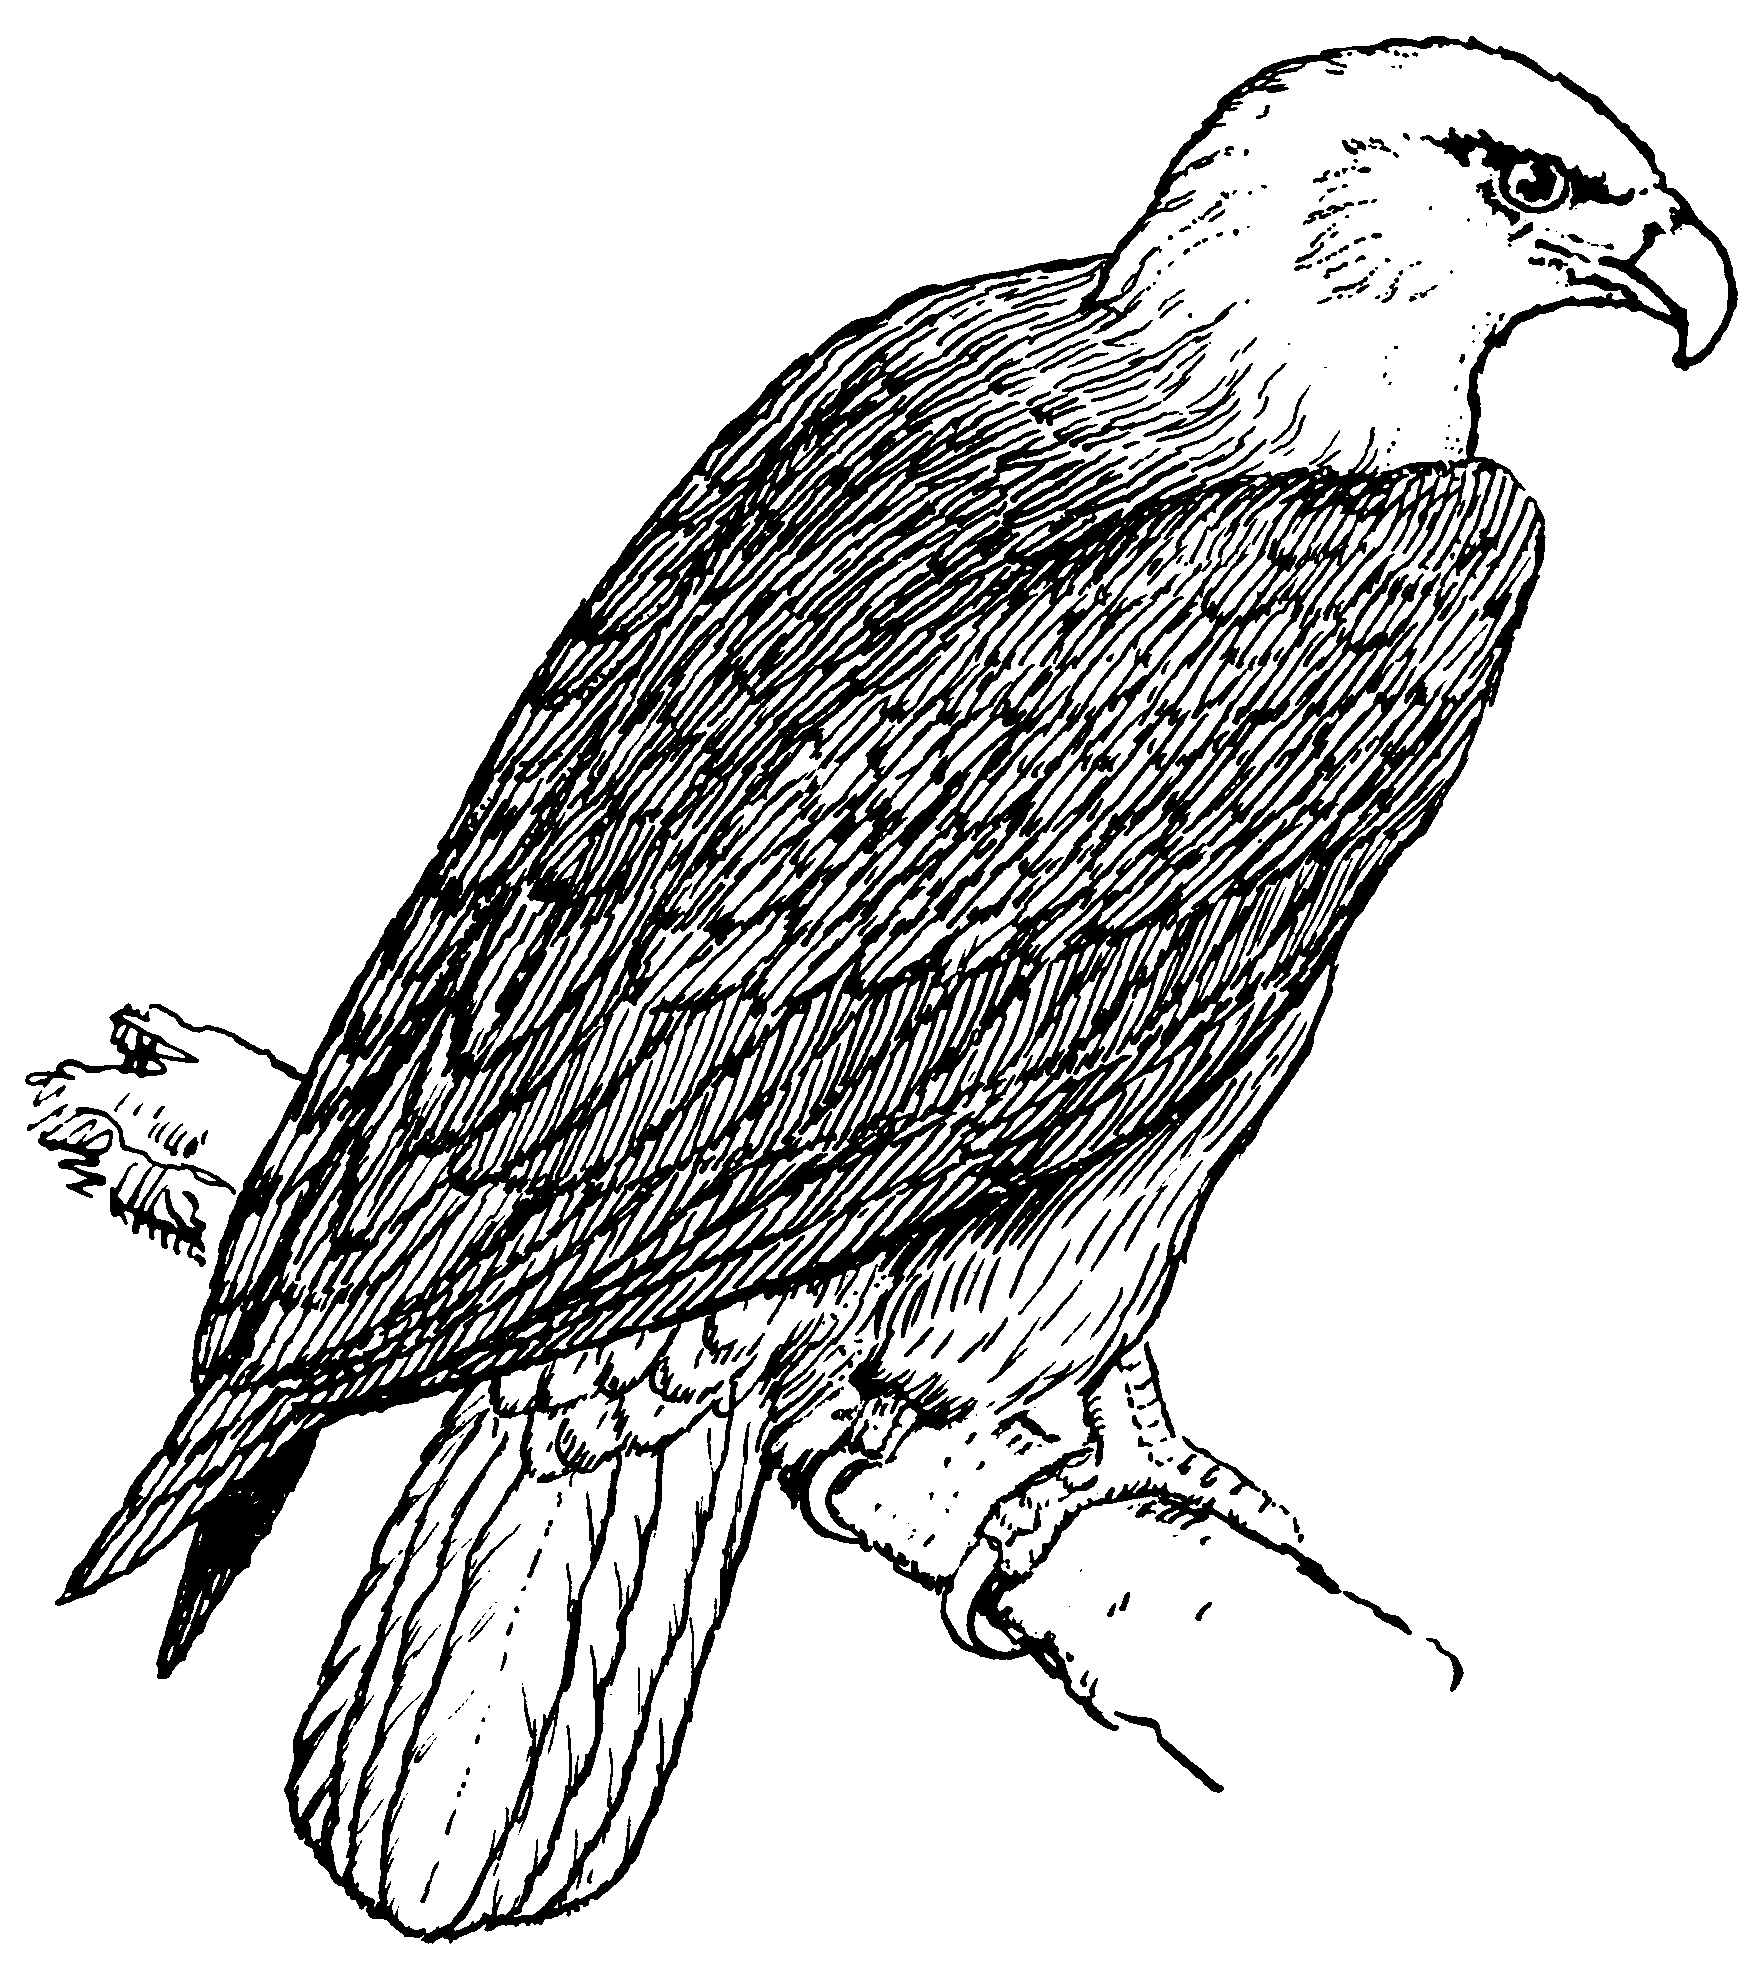 bald eagle coloring page rules of the jungle printable pictures of bald eagle bald eagle coloring page